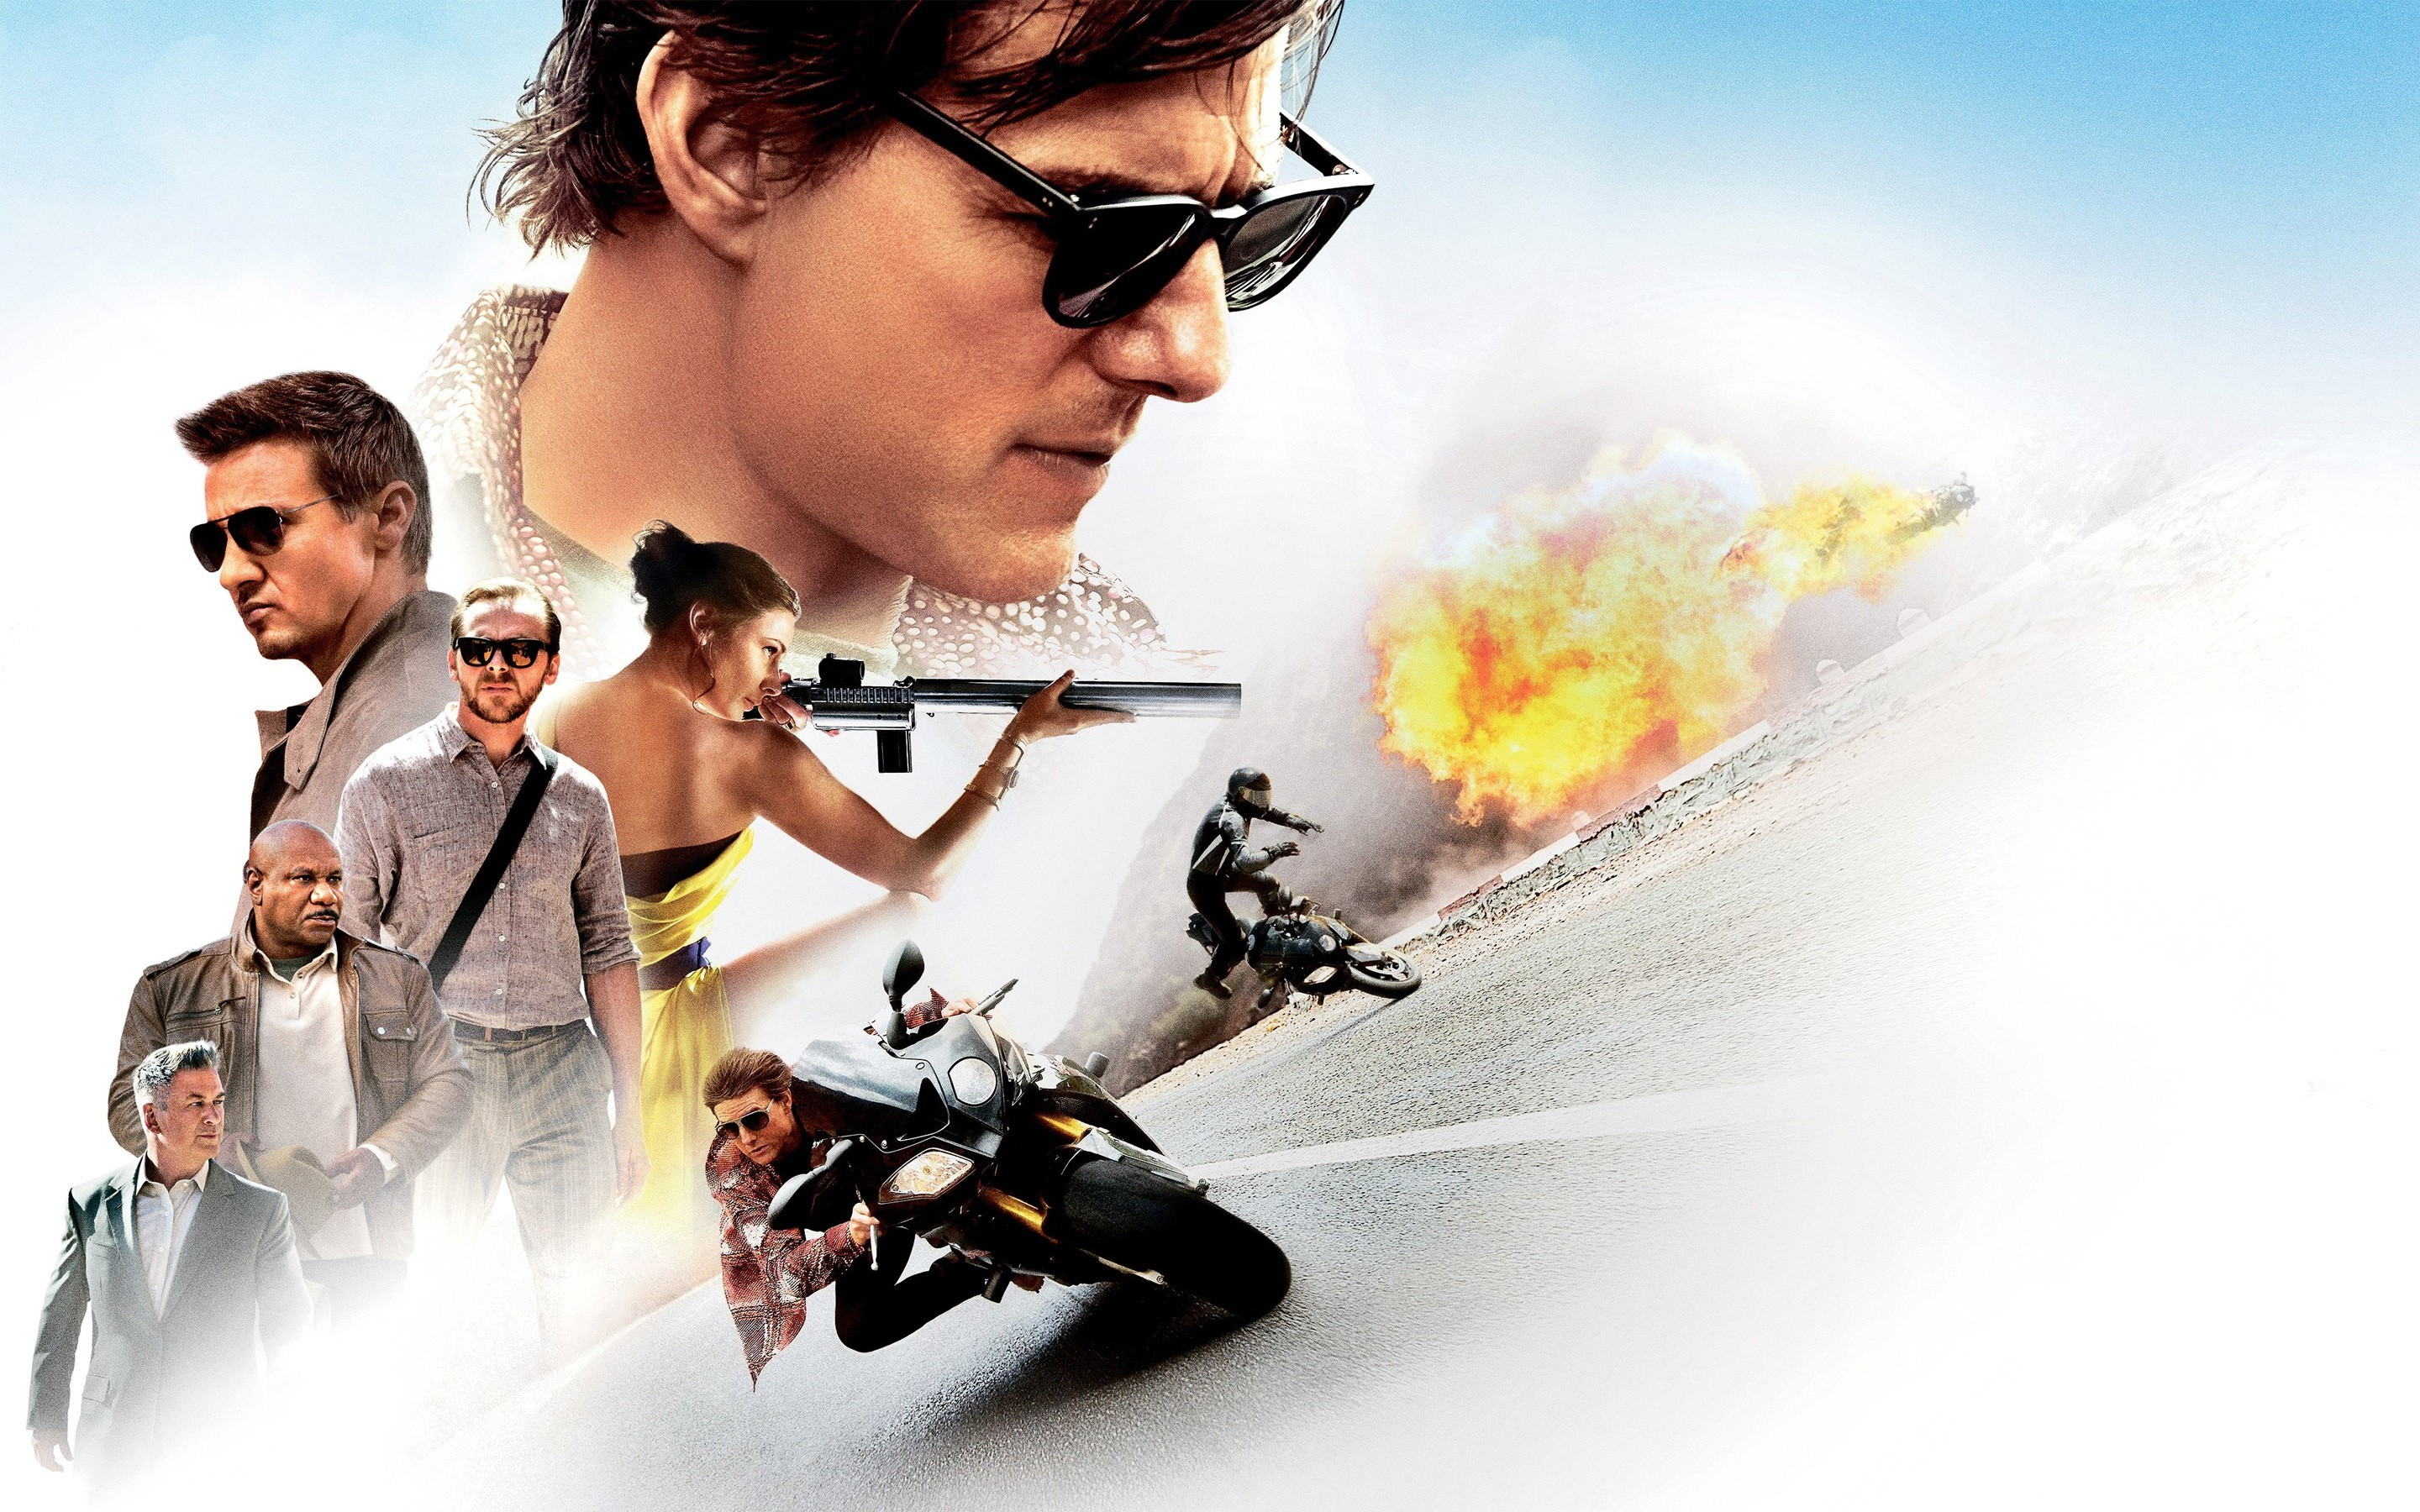 Mission Impossible Wallpapers (78+ images)